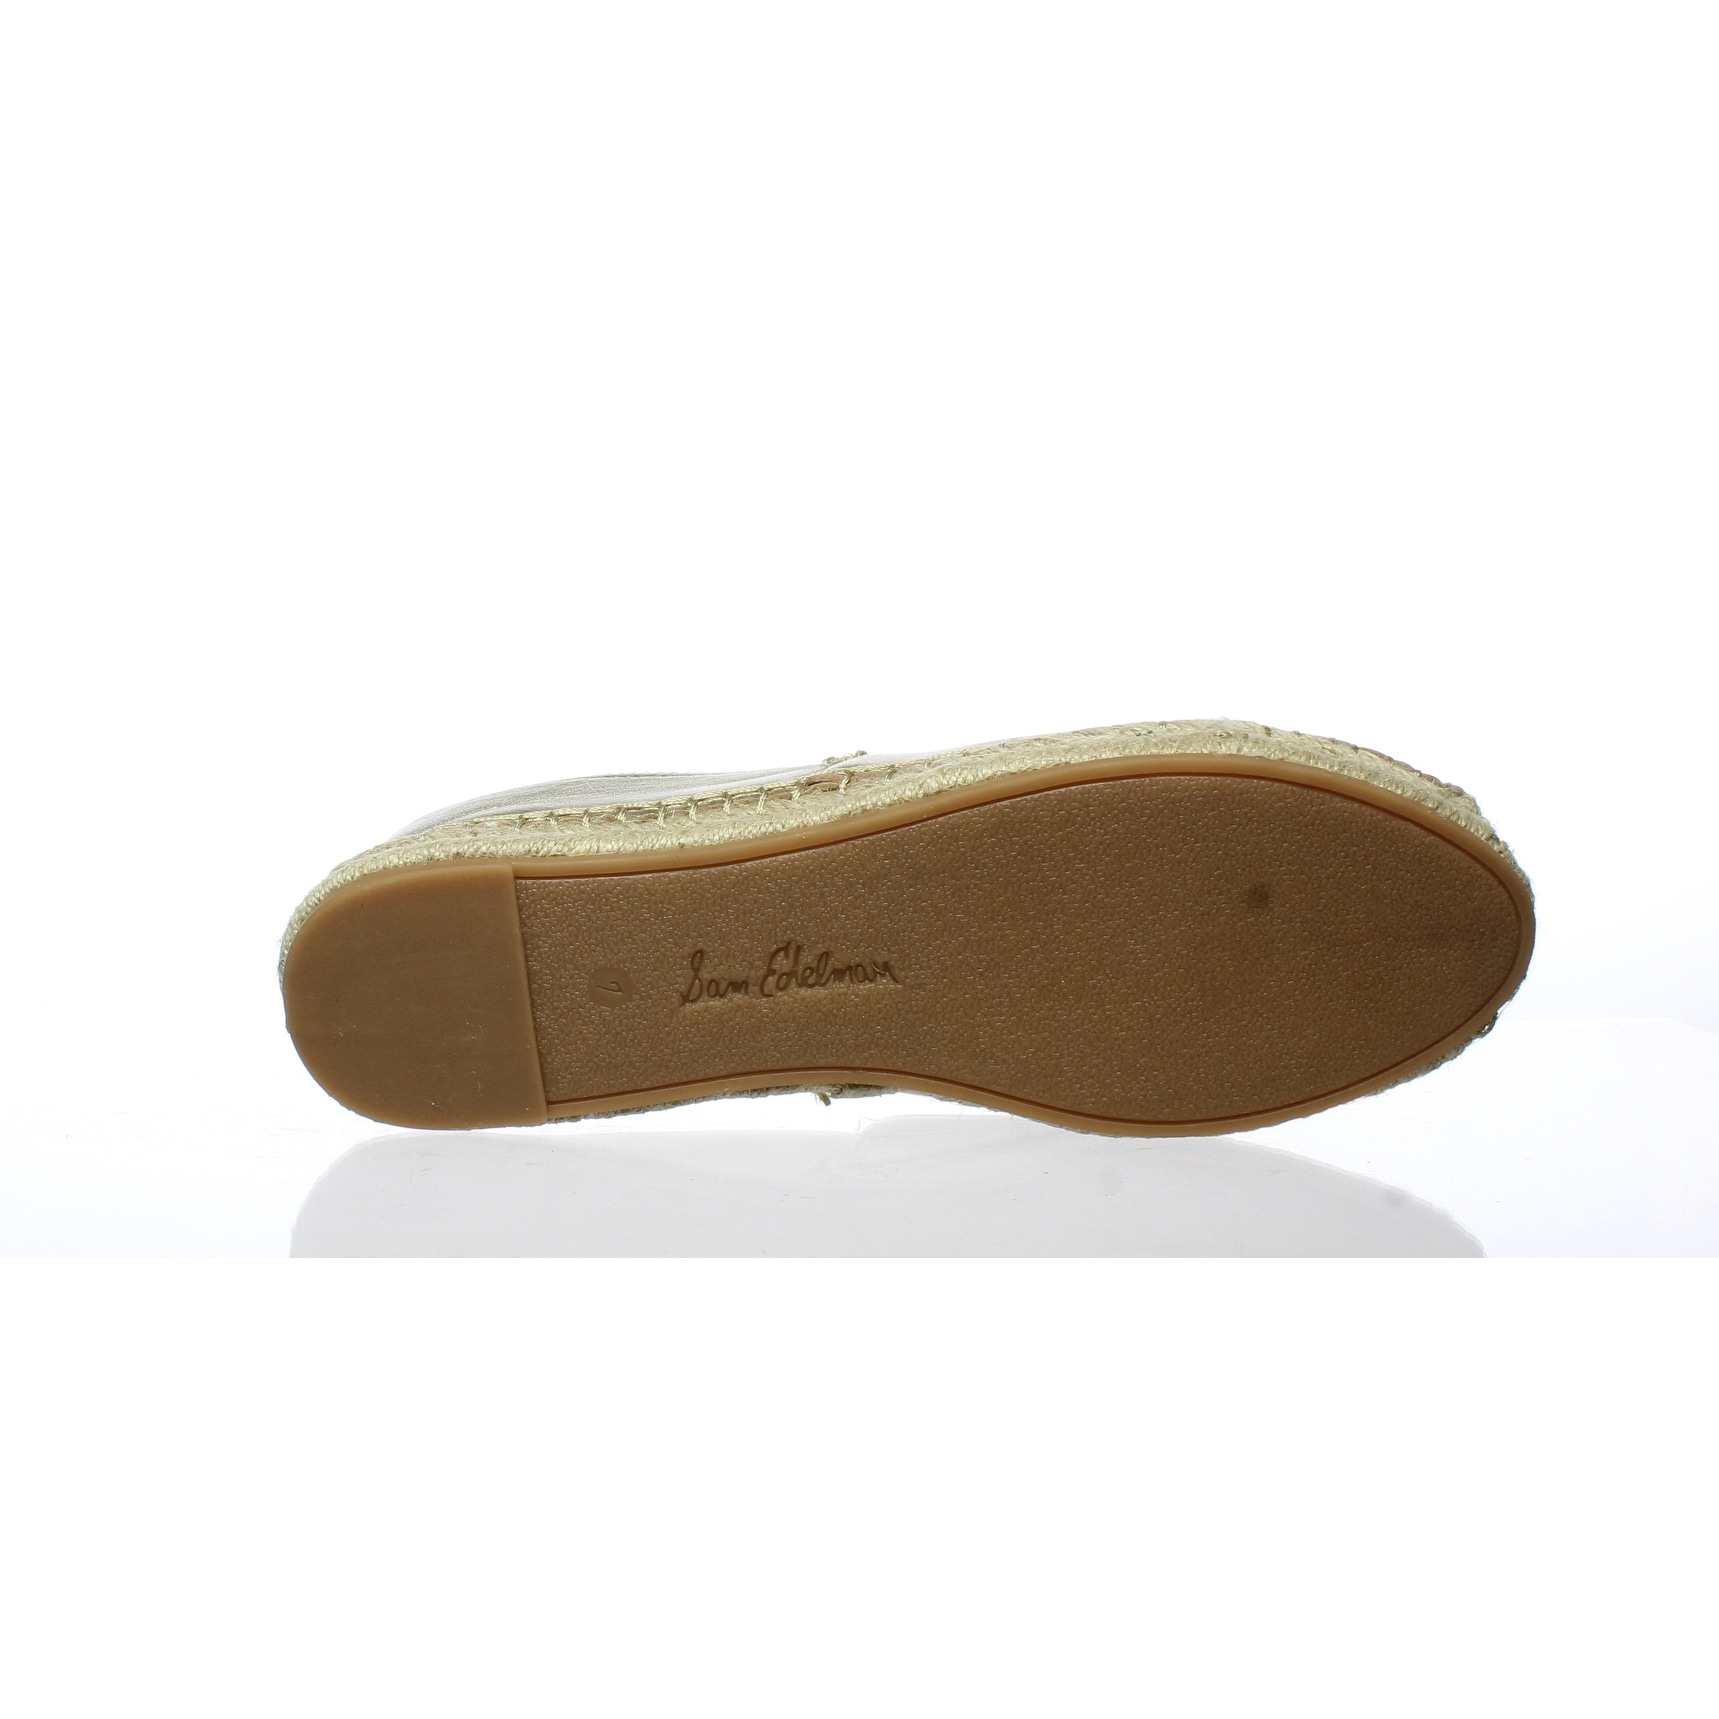 794055e2a Shop Sam Edelman Womens Khloe Gold Espadrilles Size 7 - Free Shipping Today  - Overstock - 27345990